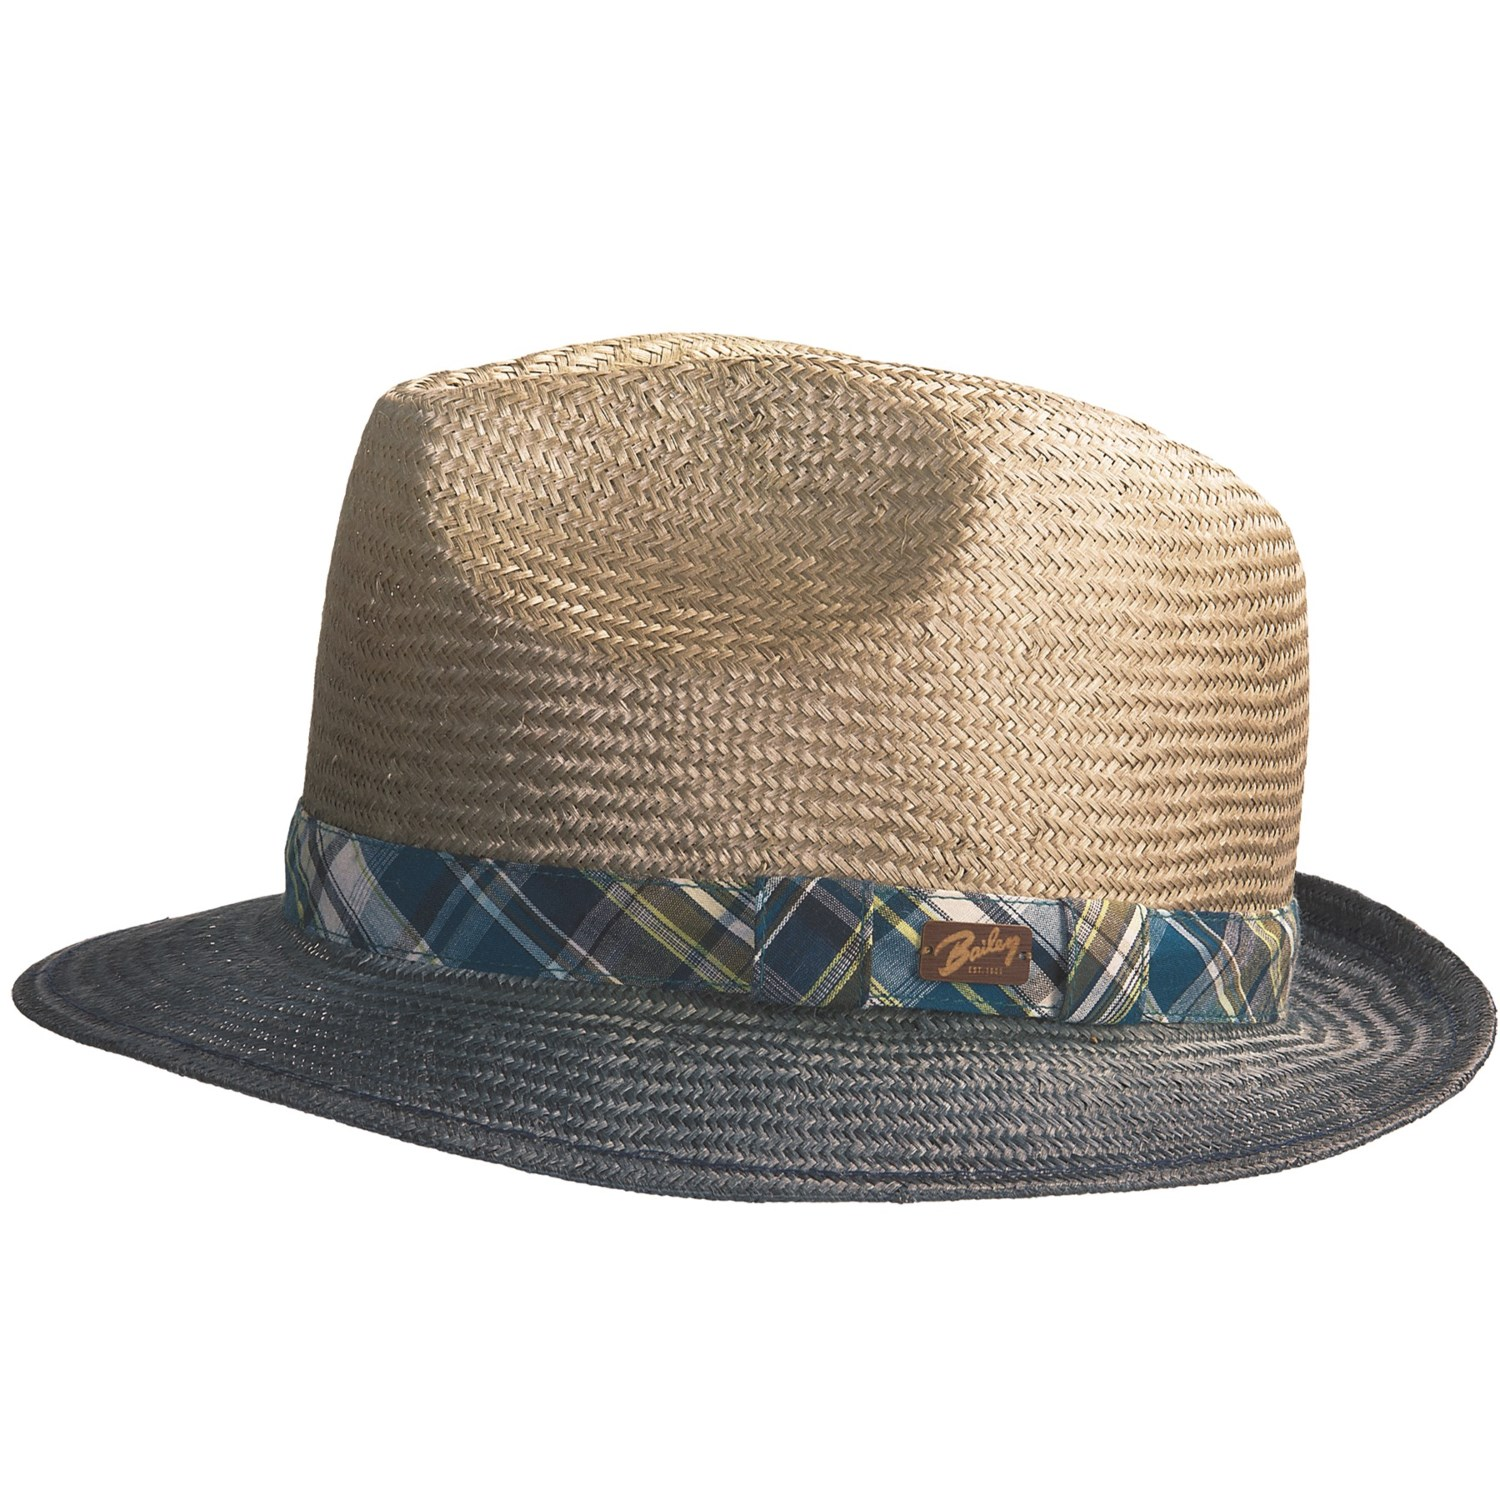 Mens Straw Fedora Hats for Men Pack of 3 Sun Hats Beach Hat $ 29 99 Prime. out of 5 stars 5. Hemantal. Men & Women's Miami Structured Straw Fedora Hat w/PU Leather Band. from $ 11 99 Prime. out of 5 stars Fancet. Packable Straw Fedora Panama Sun Summer Beach Hat Cuban Trilby Men Women cm.